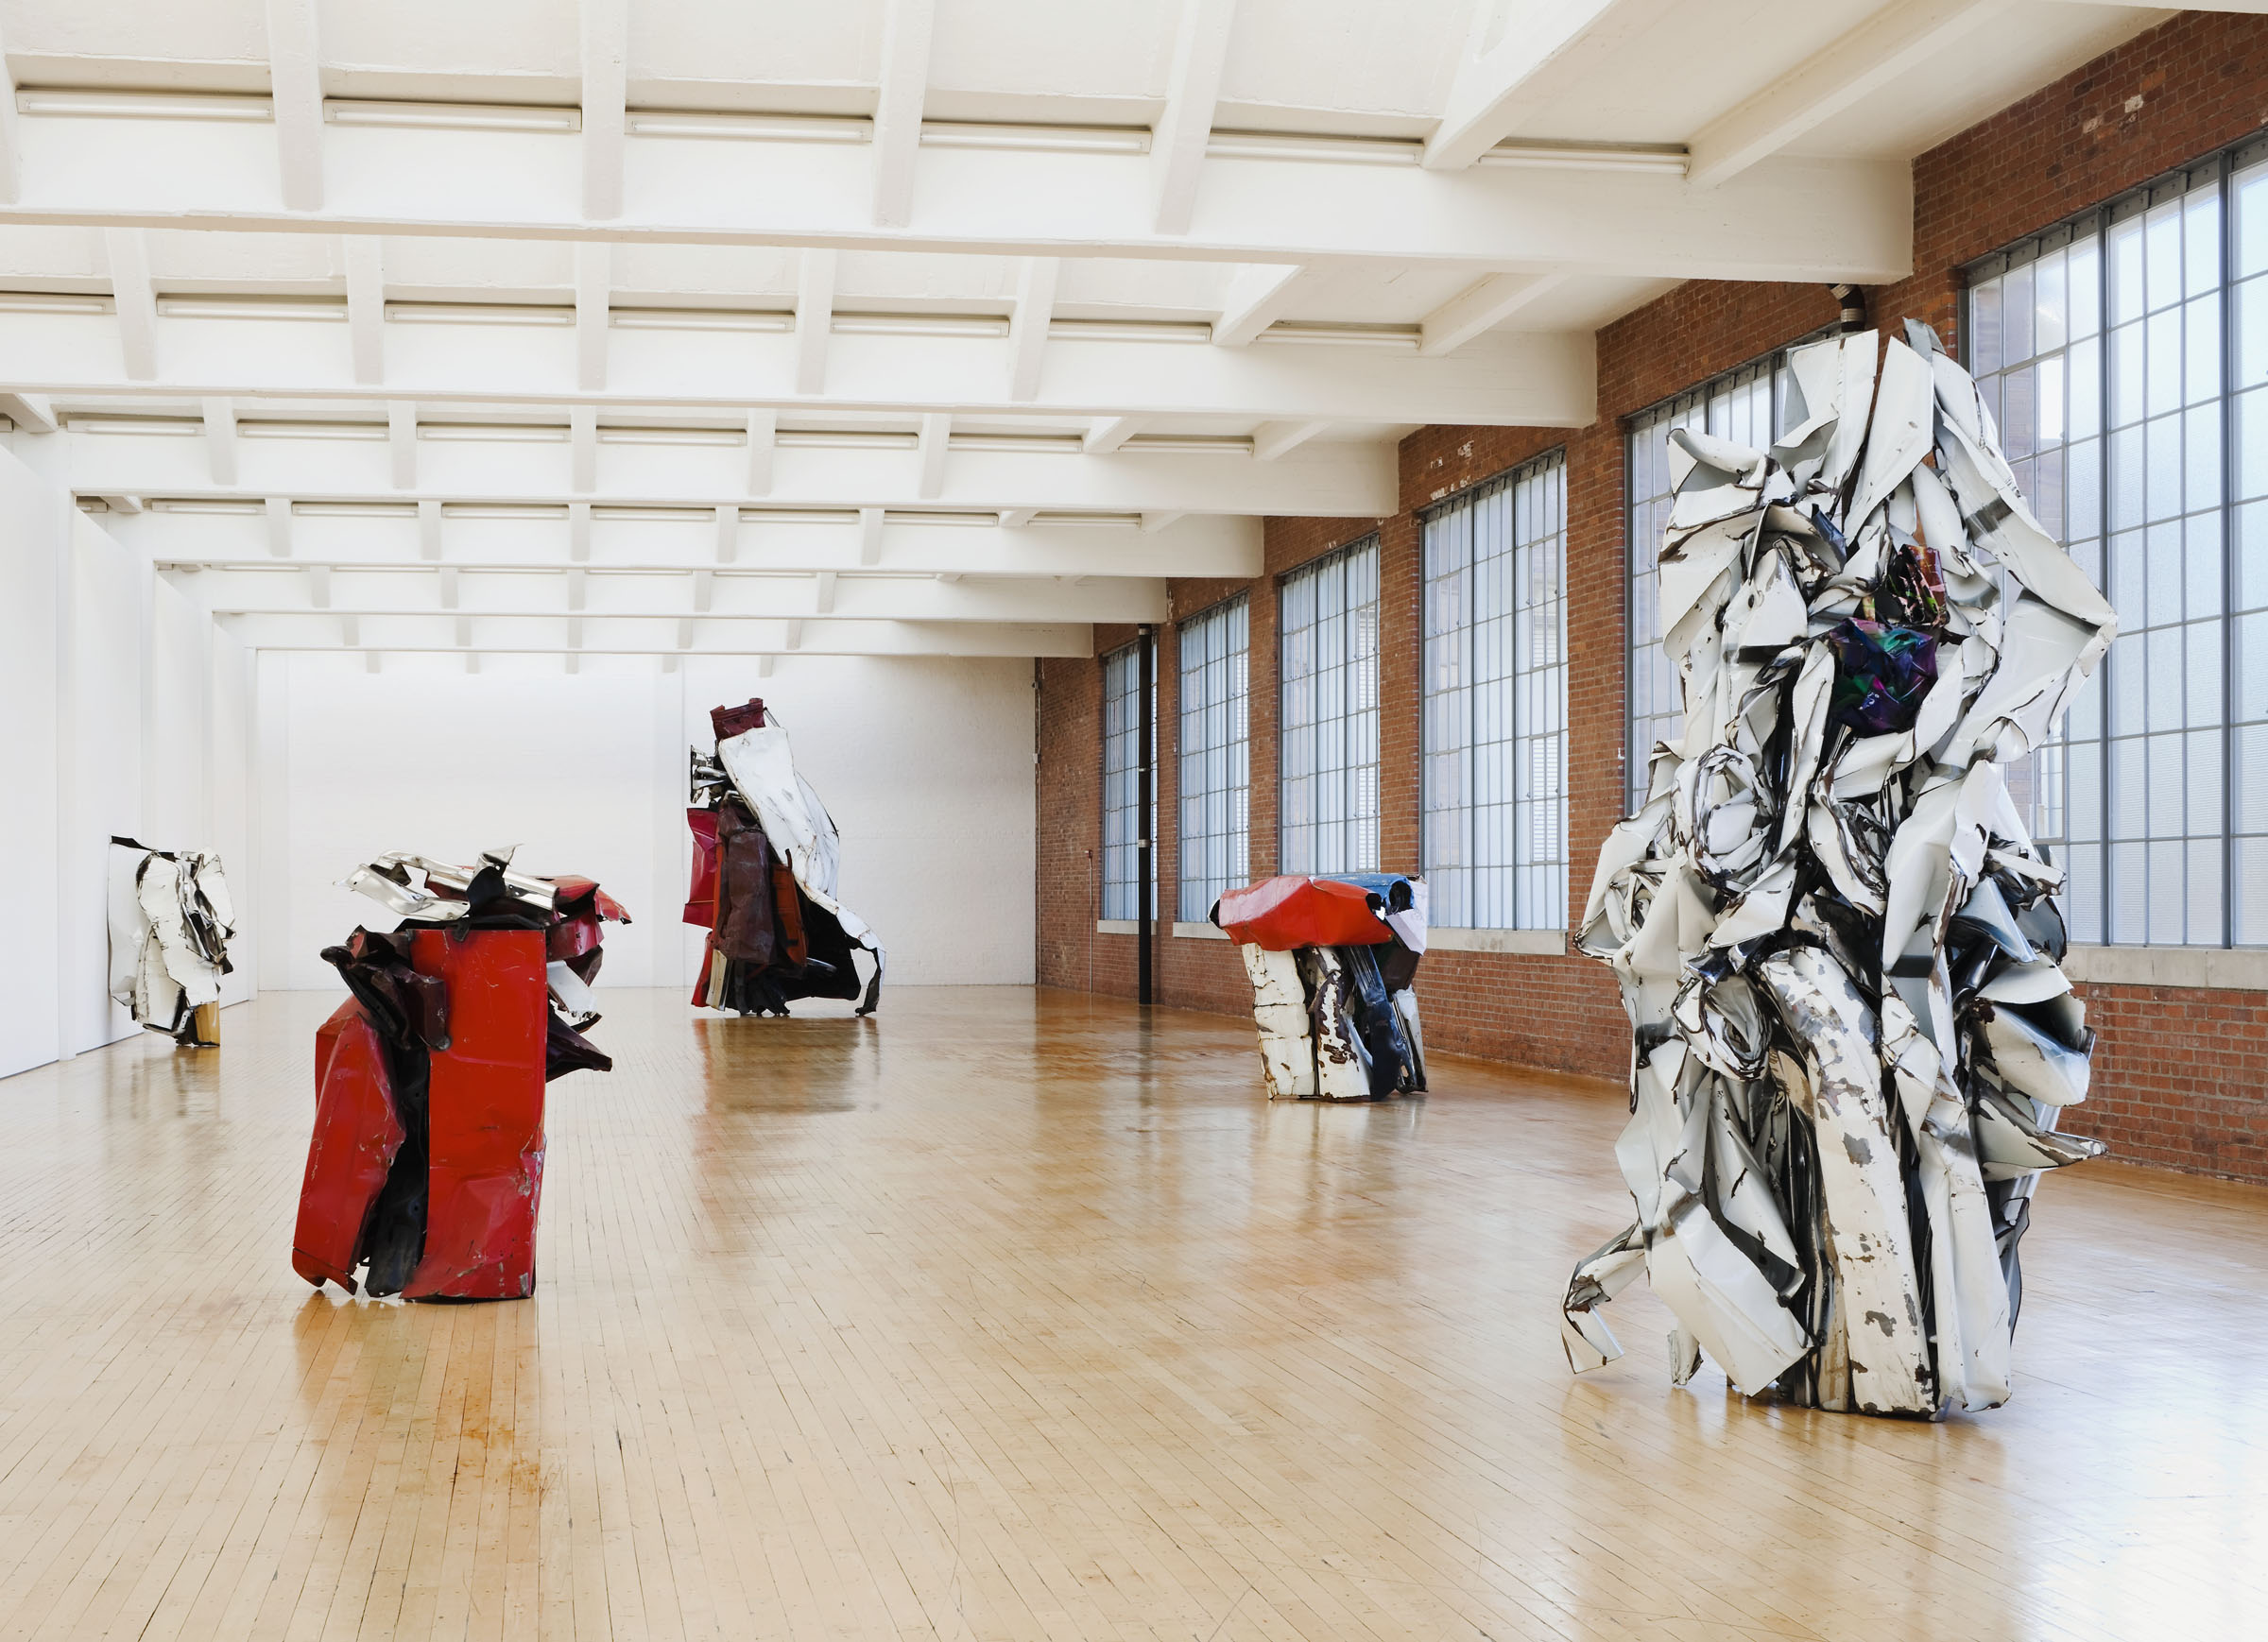 John Chamberlain, Installation View, Dia:Beacon, Riggio Galleries. © John Chamberlain/Artists Rights Society (ARS), New York. Photo: Bill Jacobson